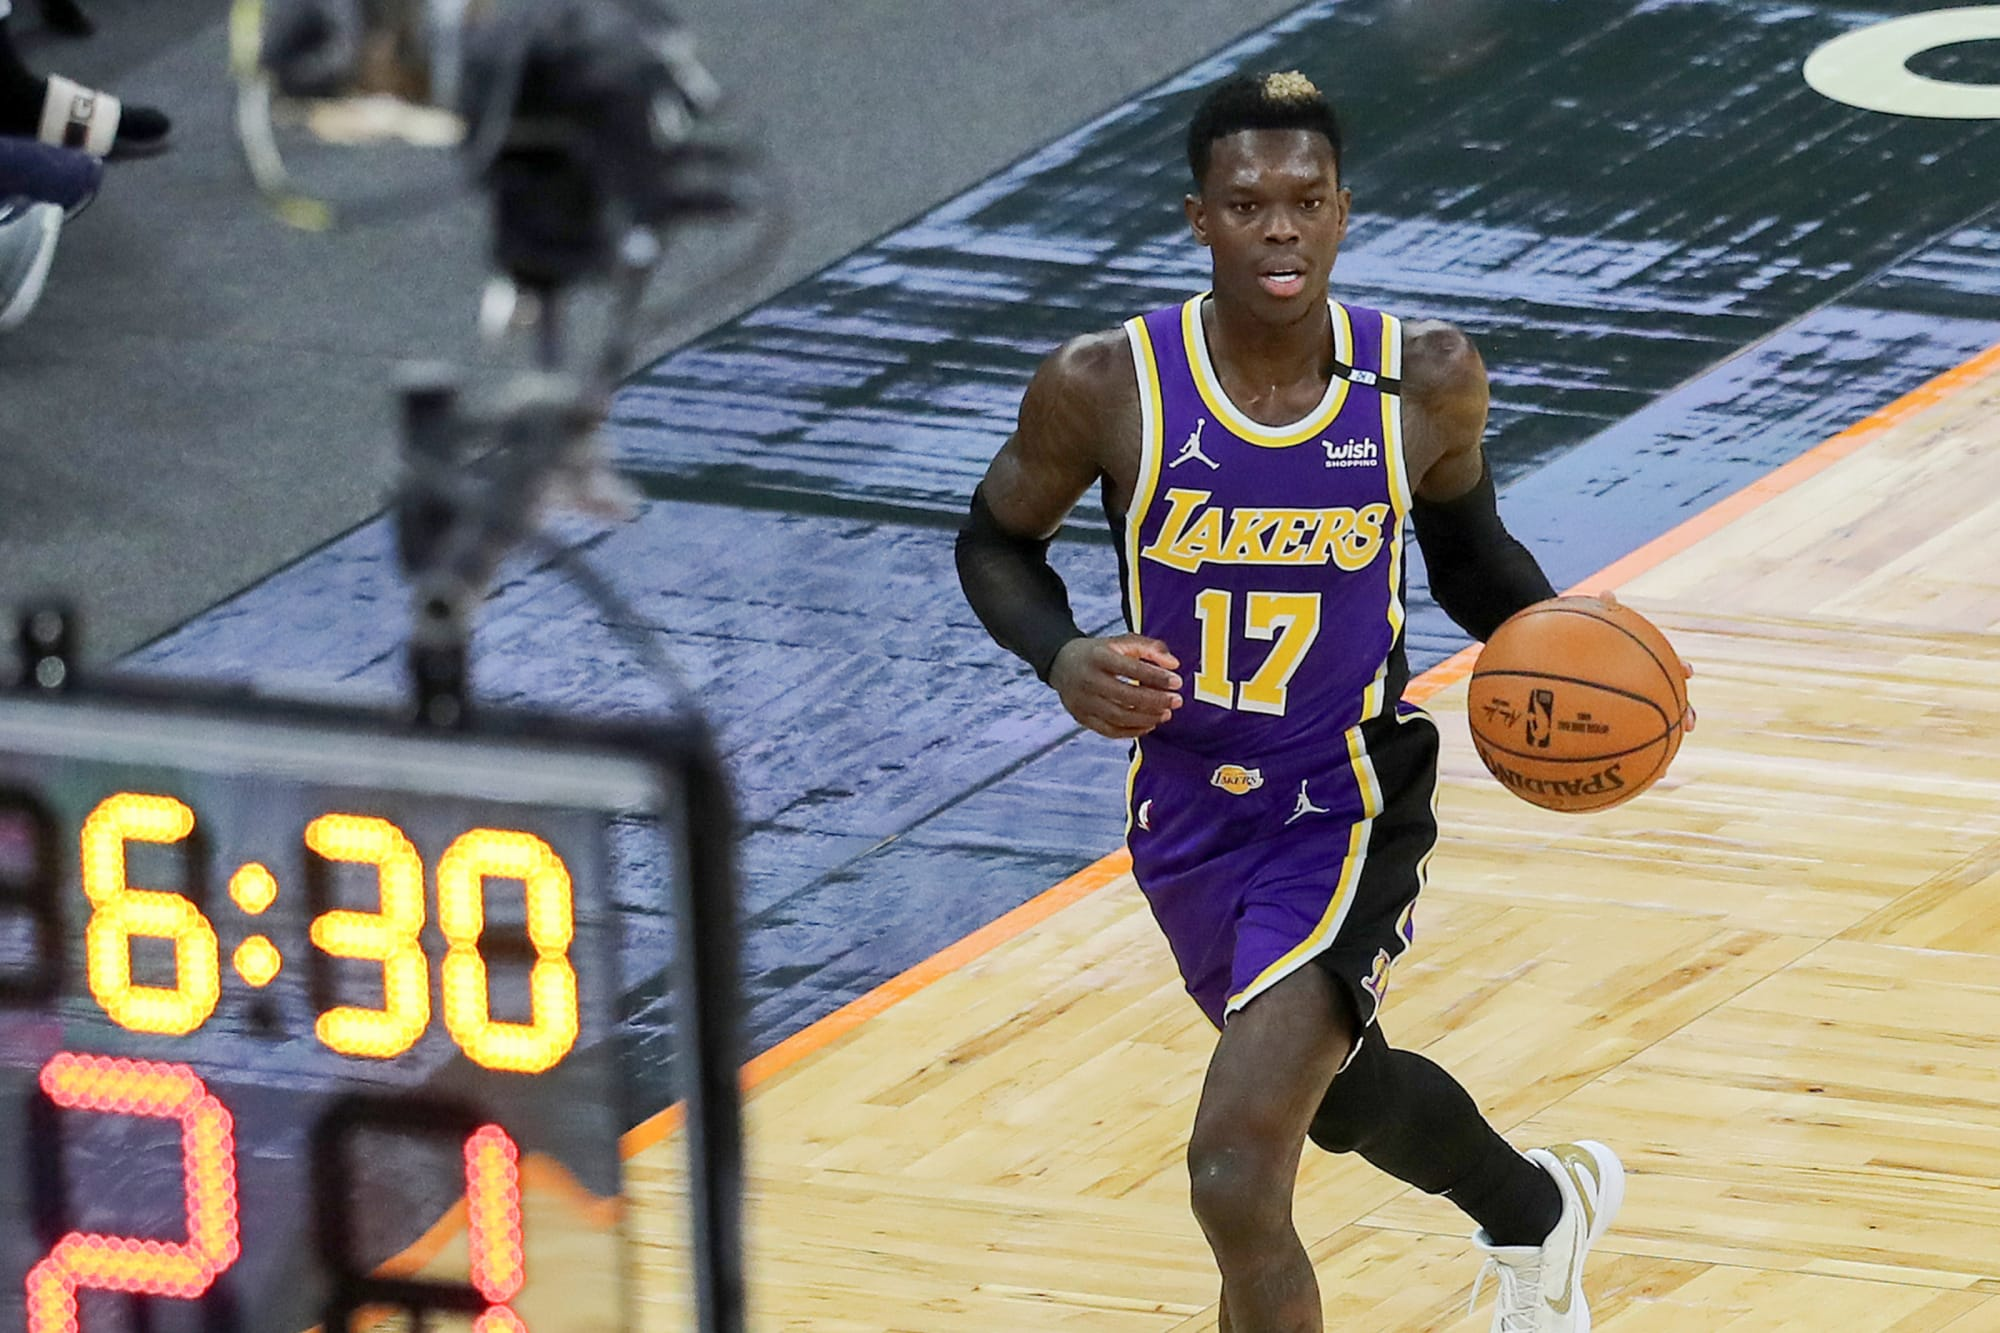 Lakers fans roast Dennis Schroder over lack of suitors after rejecting contract offer